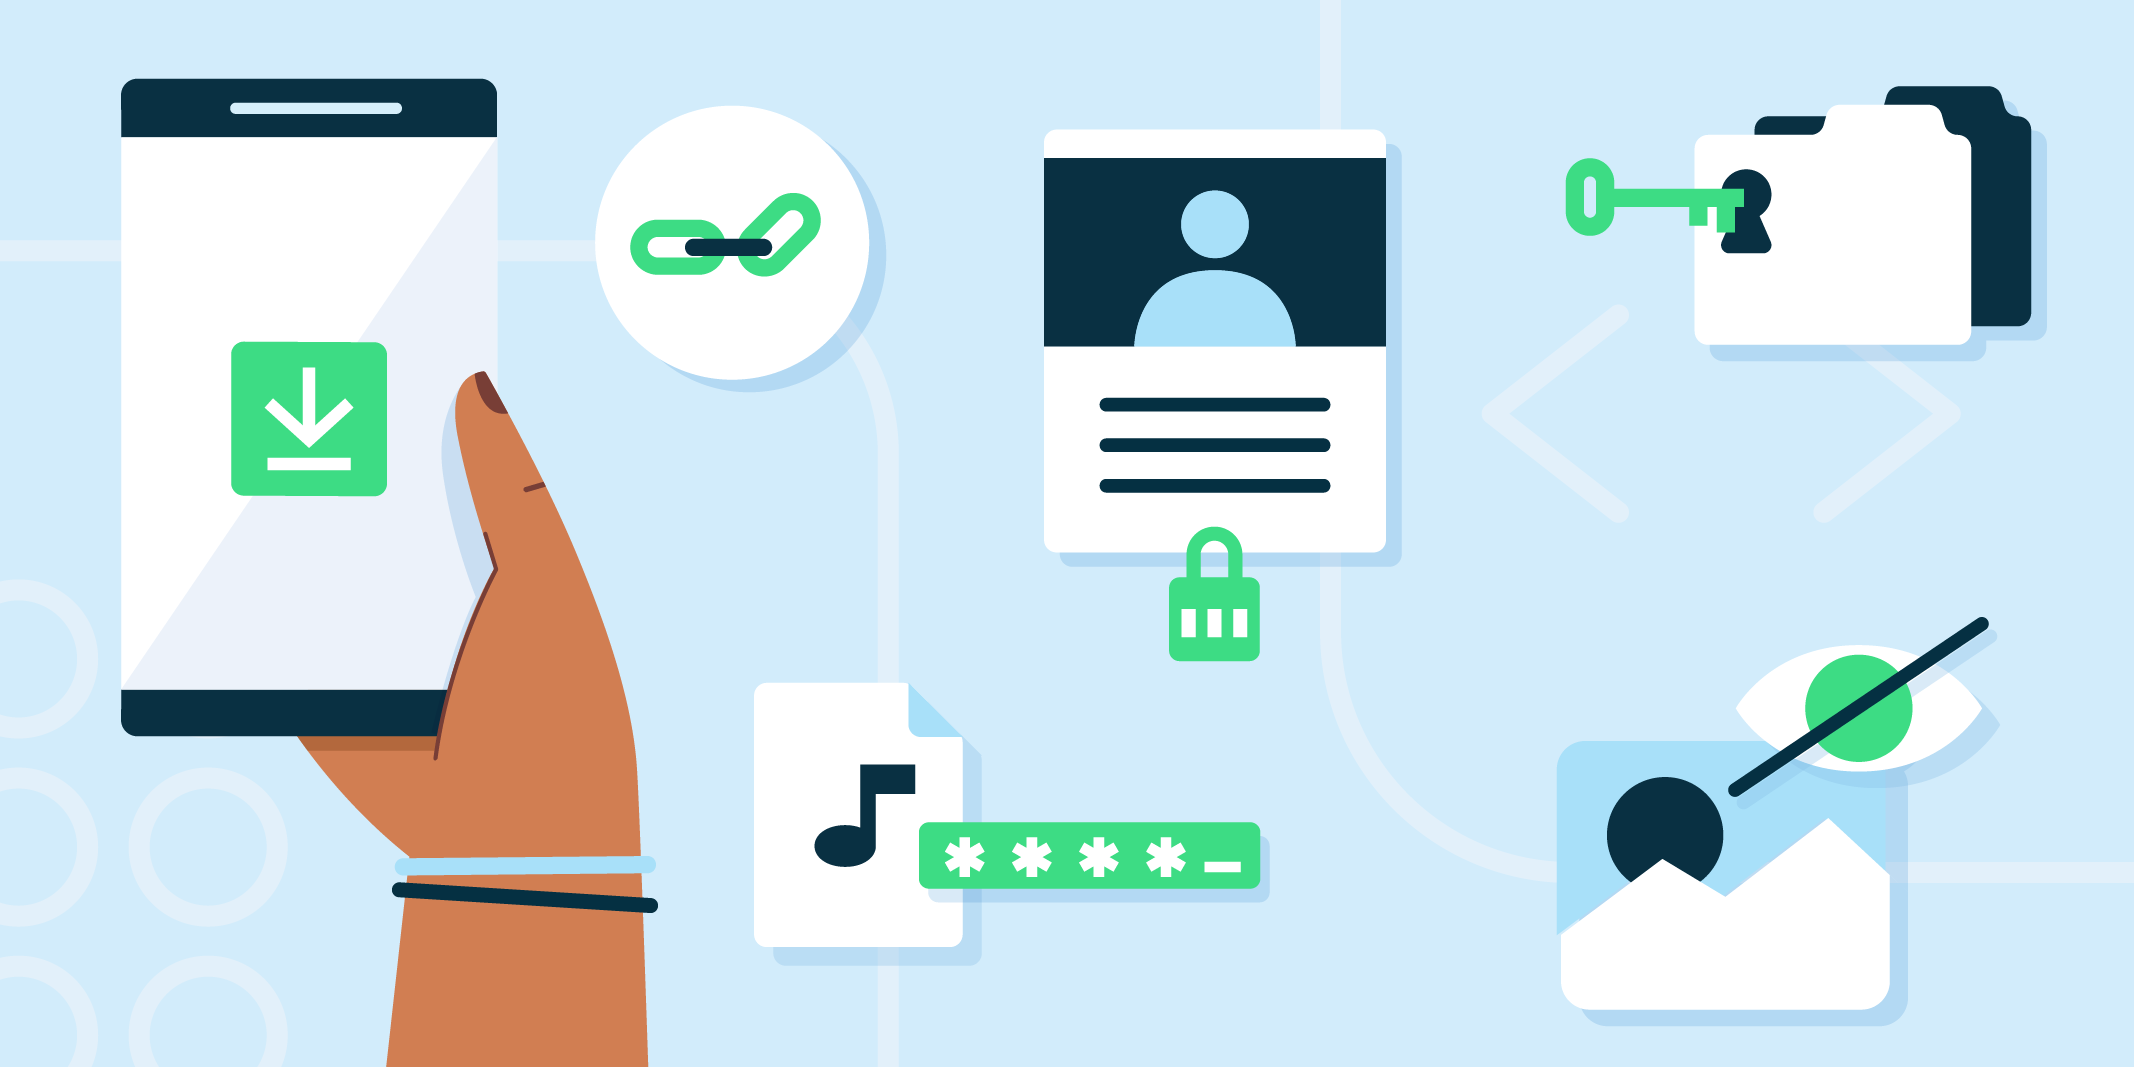 What are the most vital advantages of ready-made e-commerce applications?